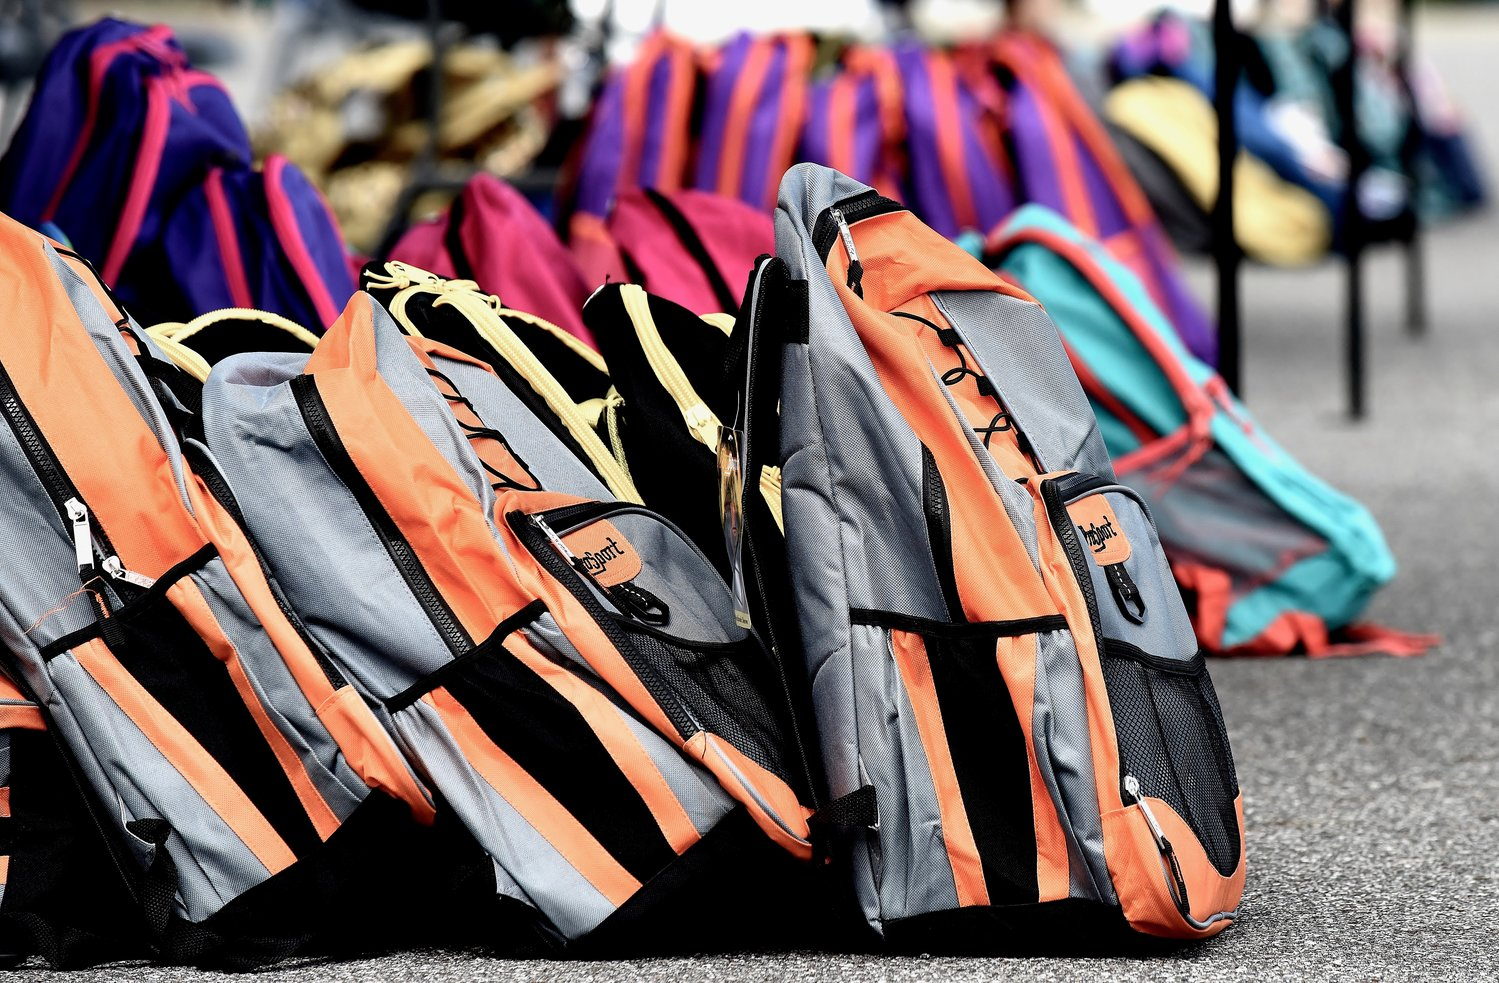 Backpacks of a variety colors and styles were filled with school supplies and distributed to students during Bartow Give a Kid a Chance.